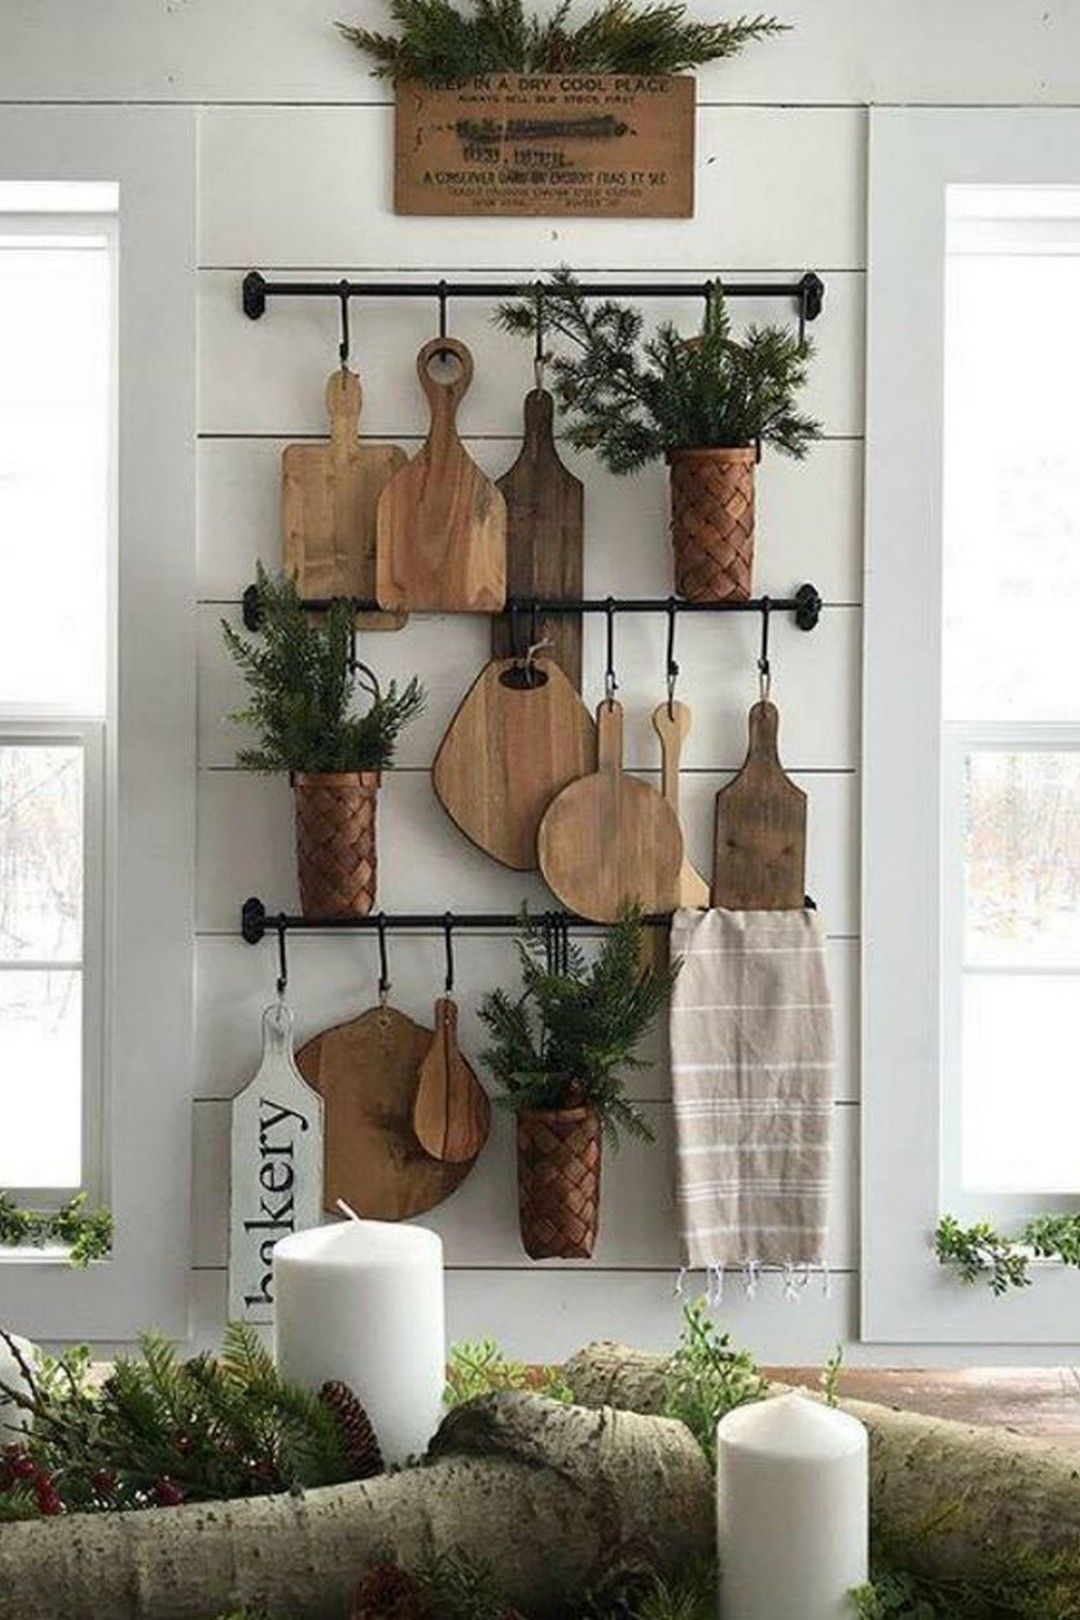 Beautify your kitchen with these farmhouse kitchen art models -  Beautify your kitchen with these f